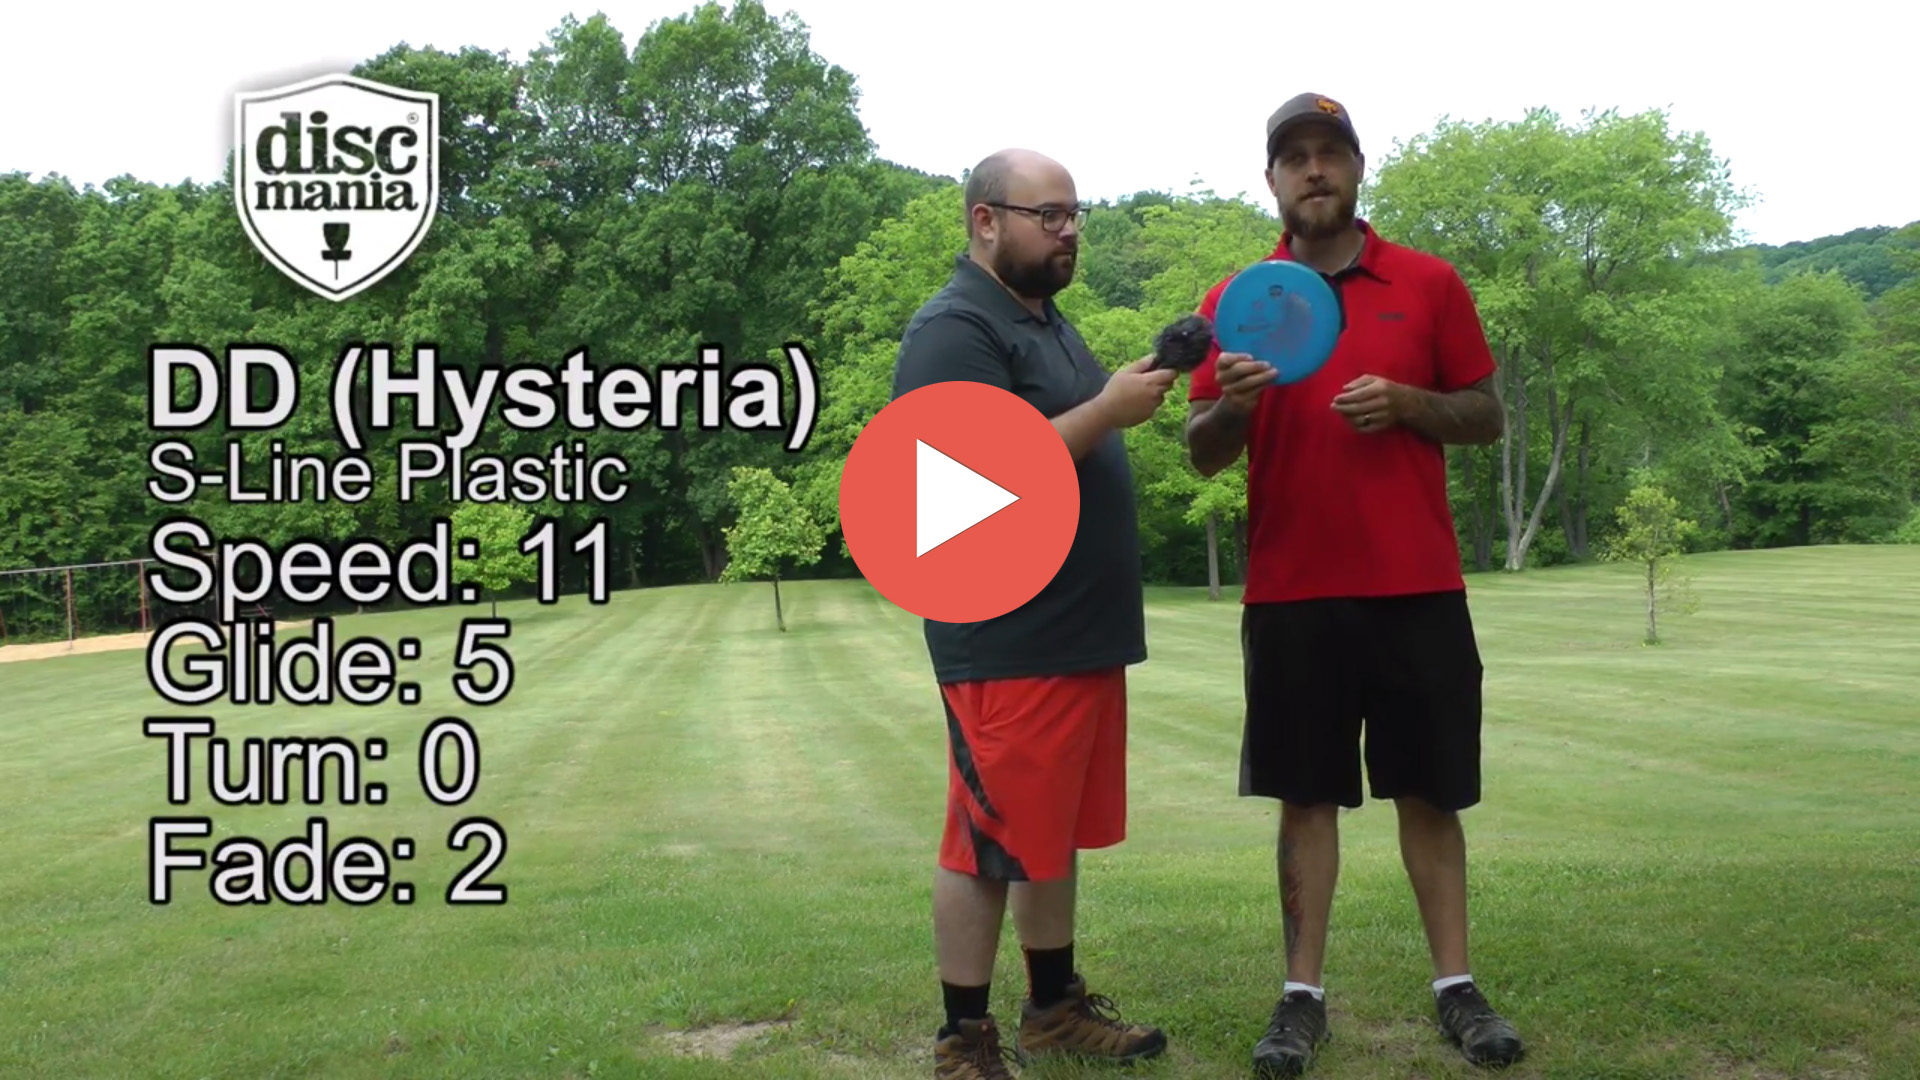 DiscMania DD Hysteria Disc Review